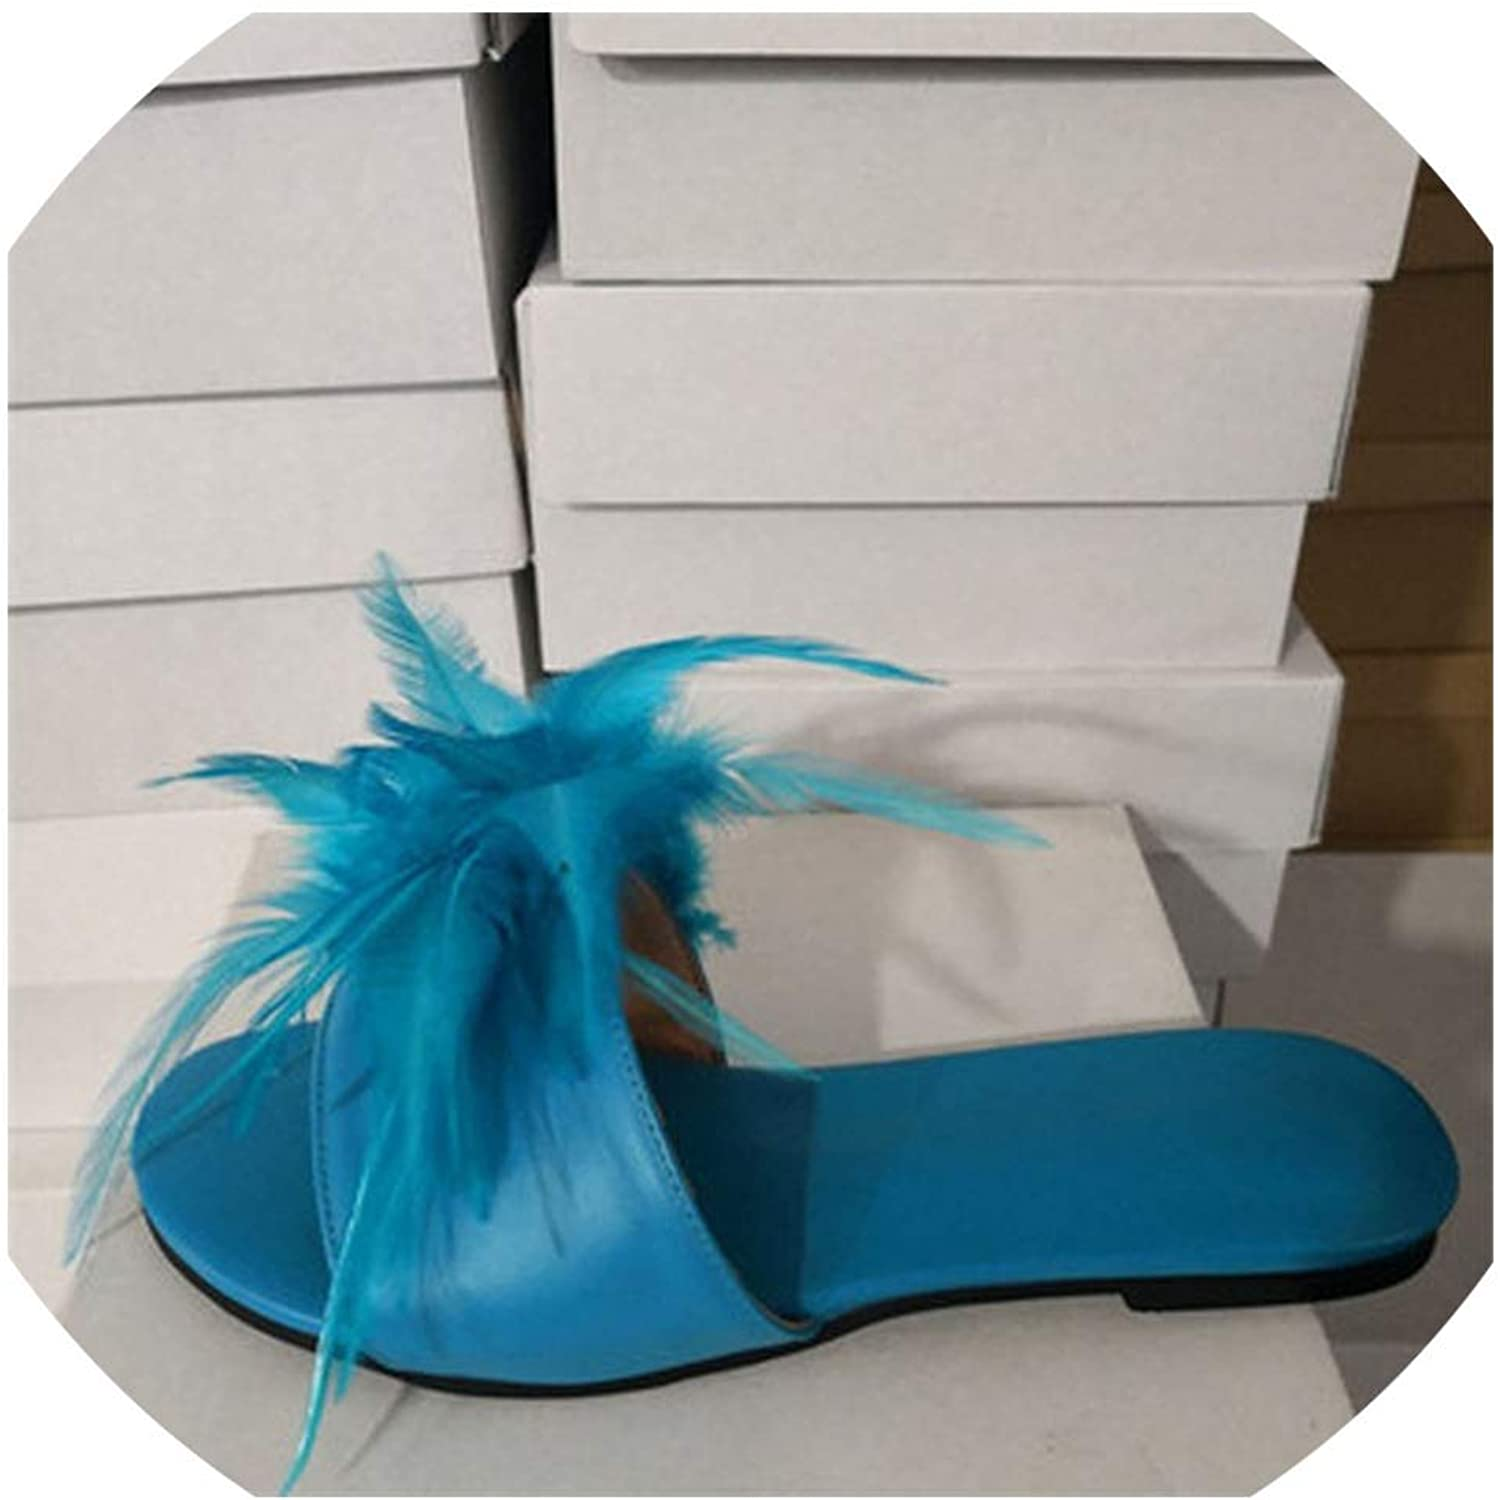 Sunshine-Family Girl Bird Feather Fur Tassel Covered Flats Slipper Women Open Toe Beach shoes Sexy Slippers